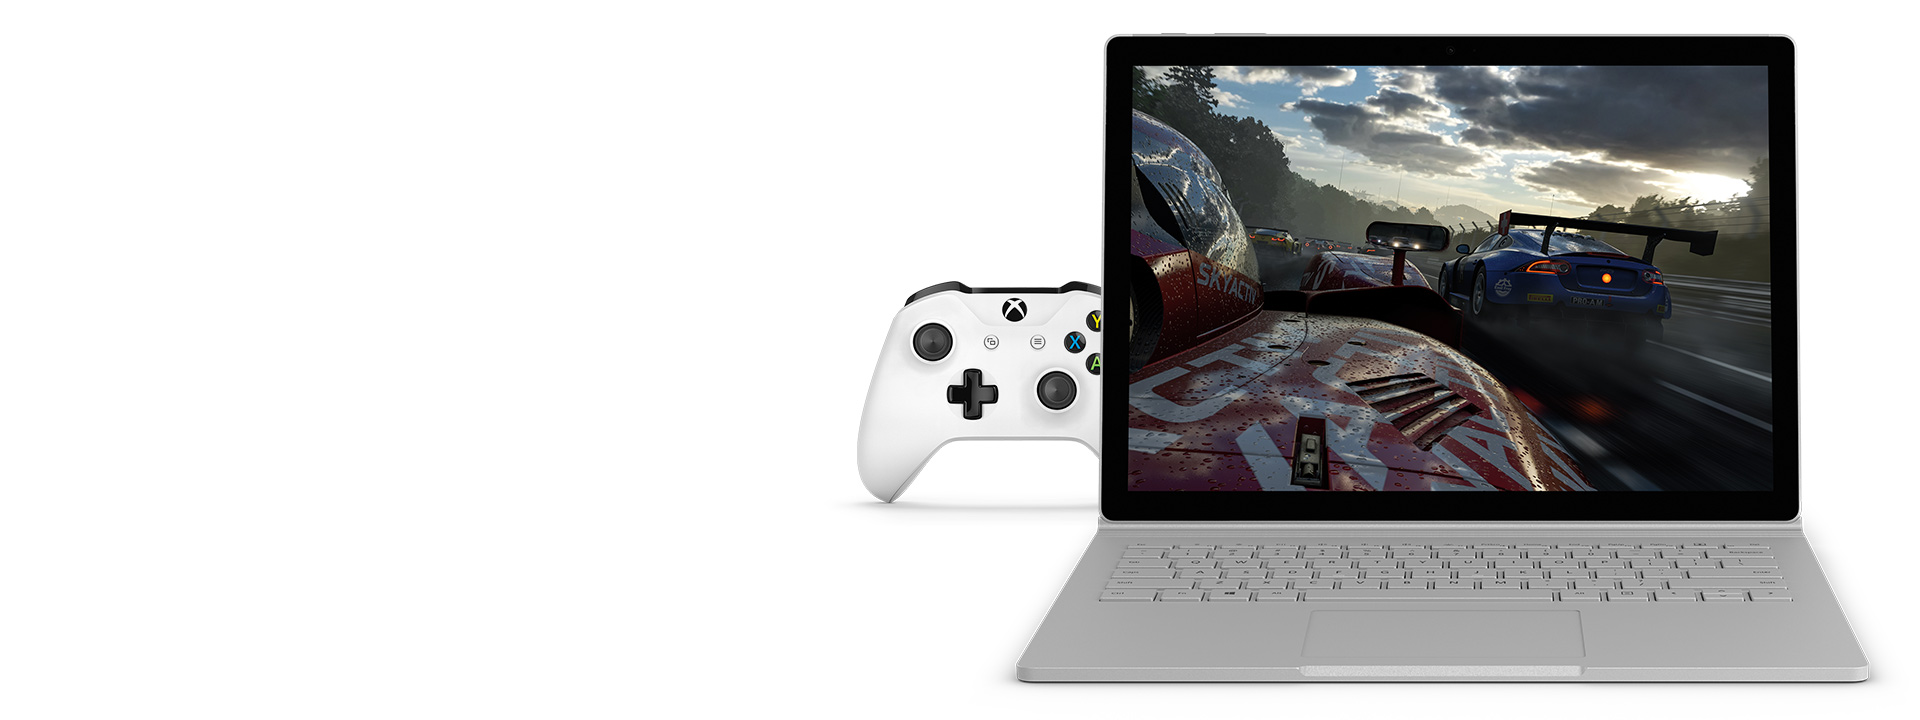 Gaming on Surface Book 2 with Xbox Wireless Controller